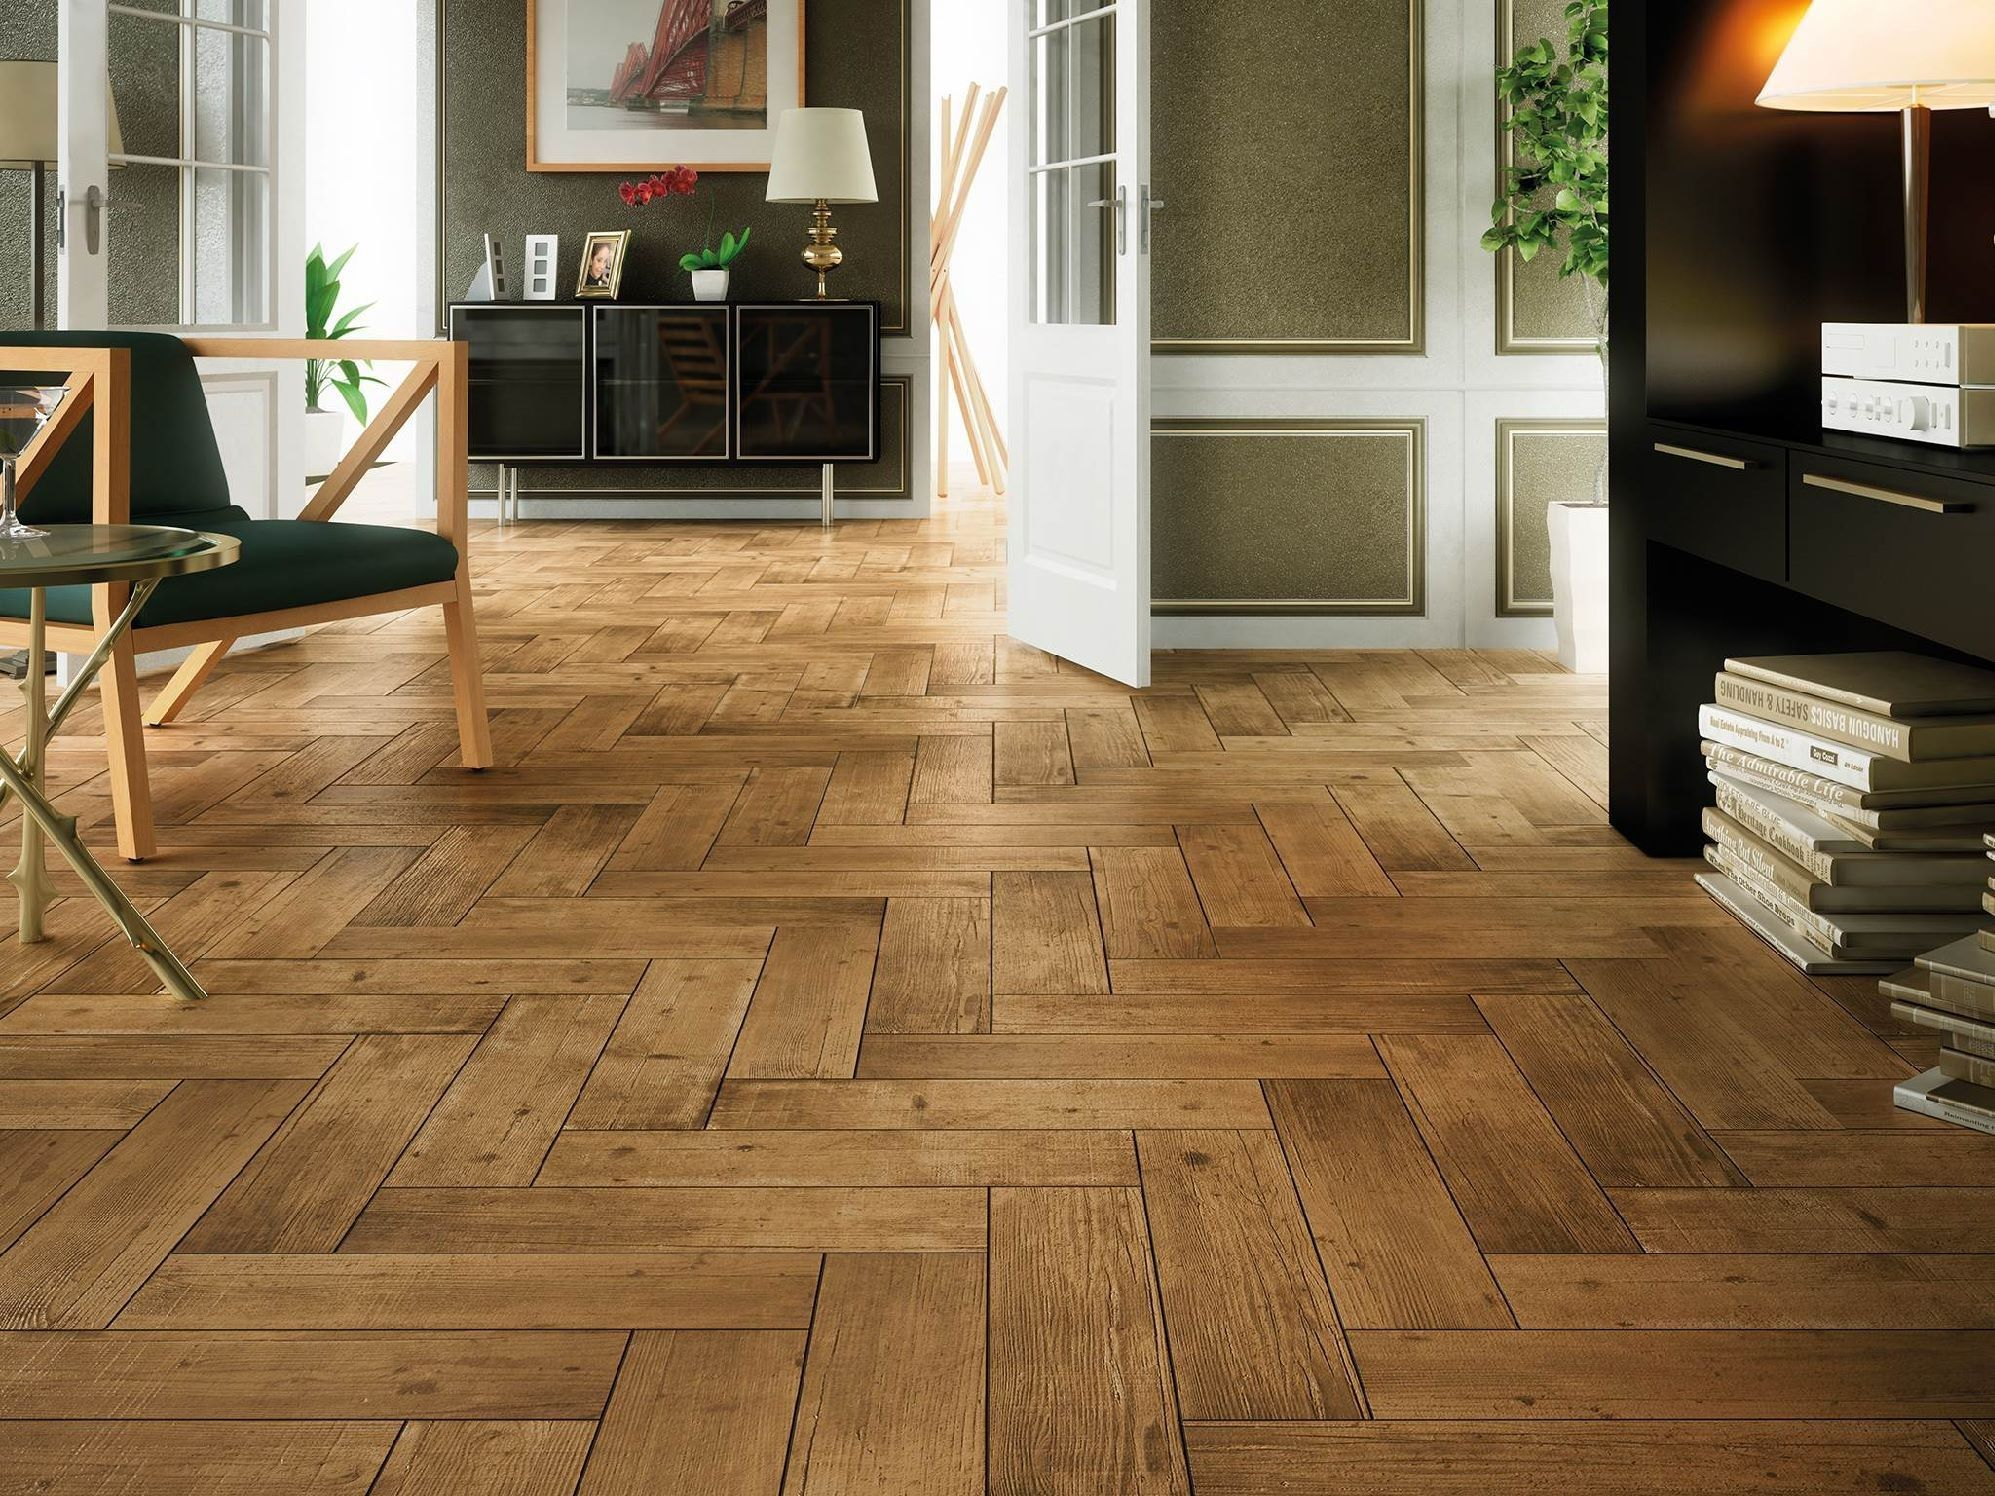 Timber Is A Beautiful Wood Effect Ceramic Tile With An Authentic Grain Texture Suitable For Kitchens Hall Wood Effect Floor Tiles Wood Effect Tiles Tile Floor